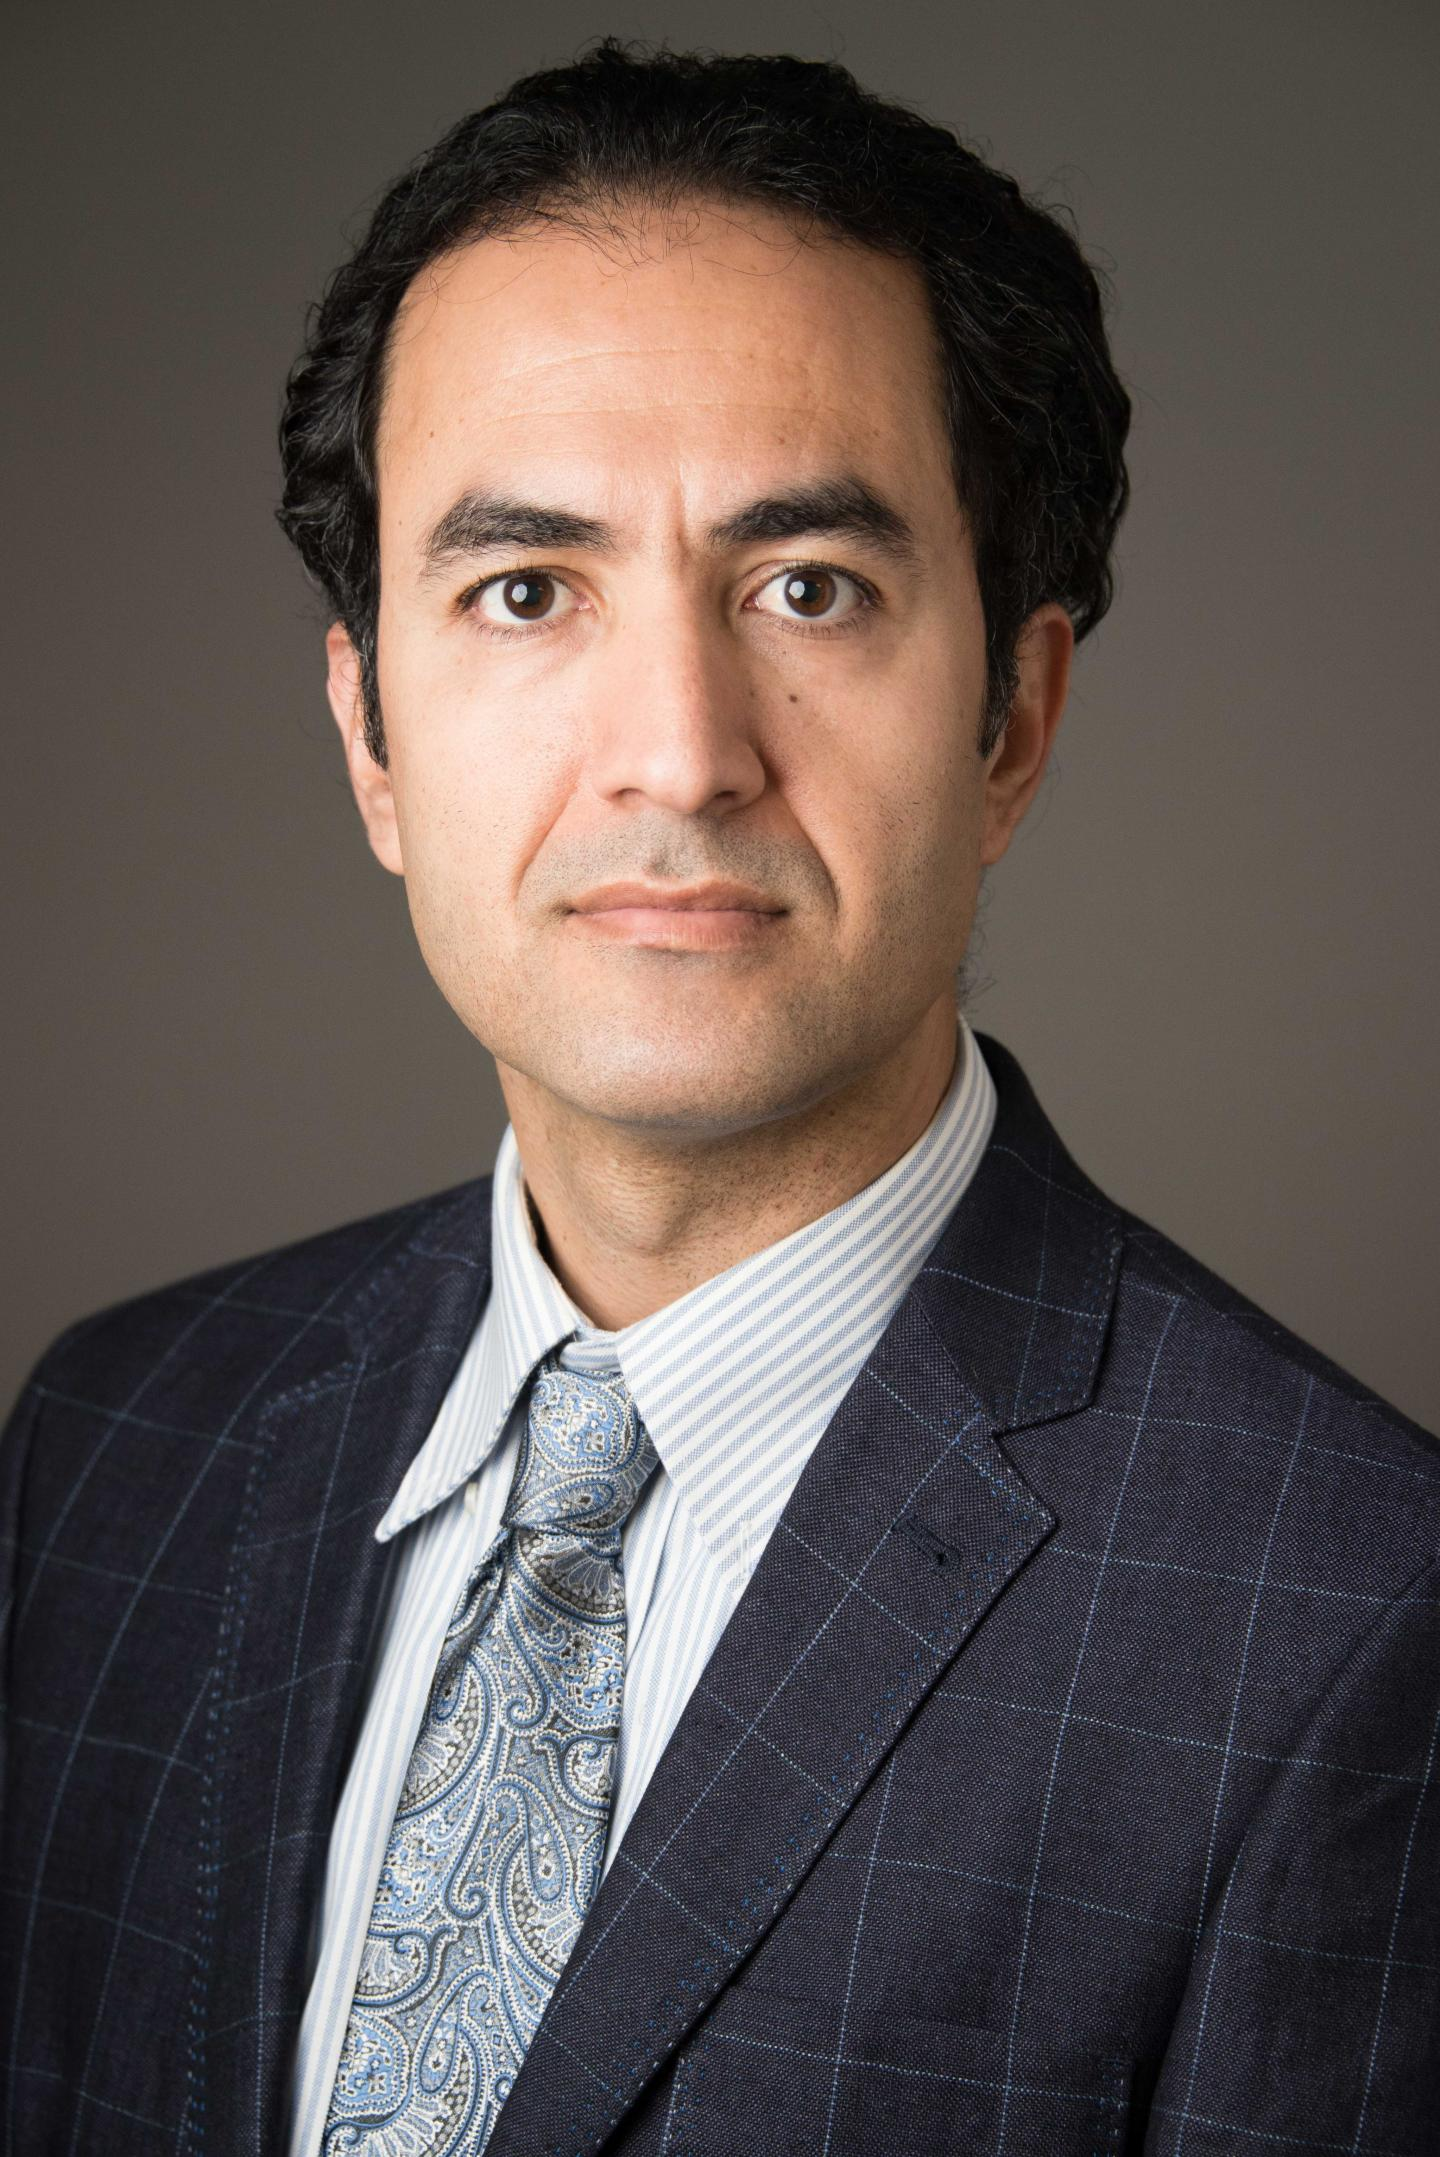 Dr. Siamak Yousefi, University of Tennessee Health Science Center